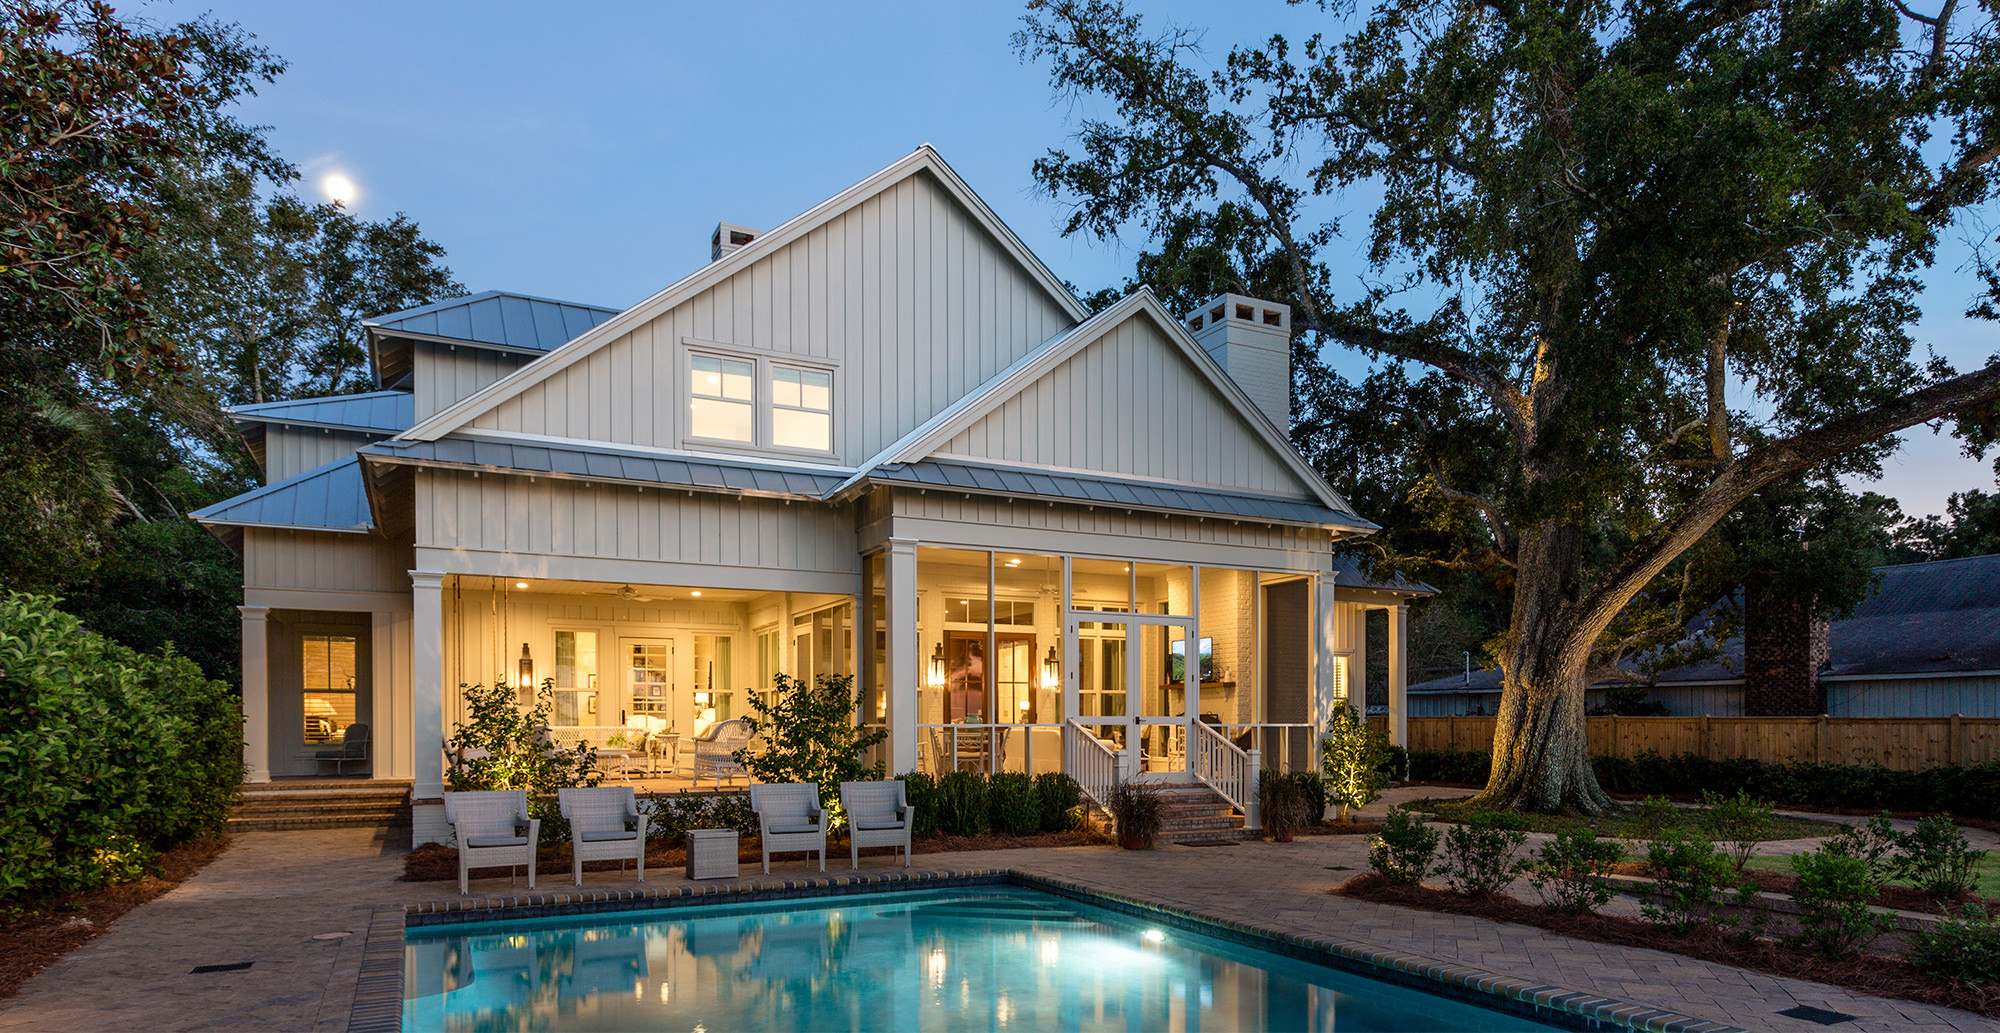 Fairhope architectural photography services offers vacation rental photography services.